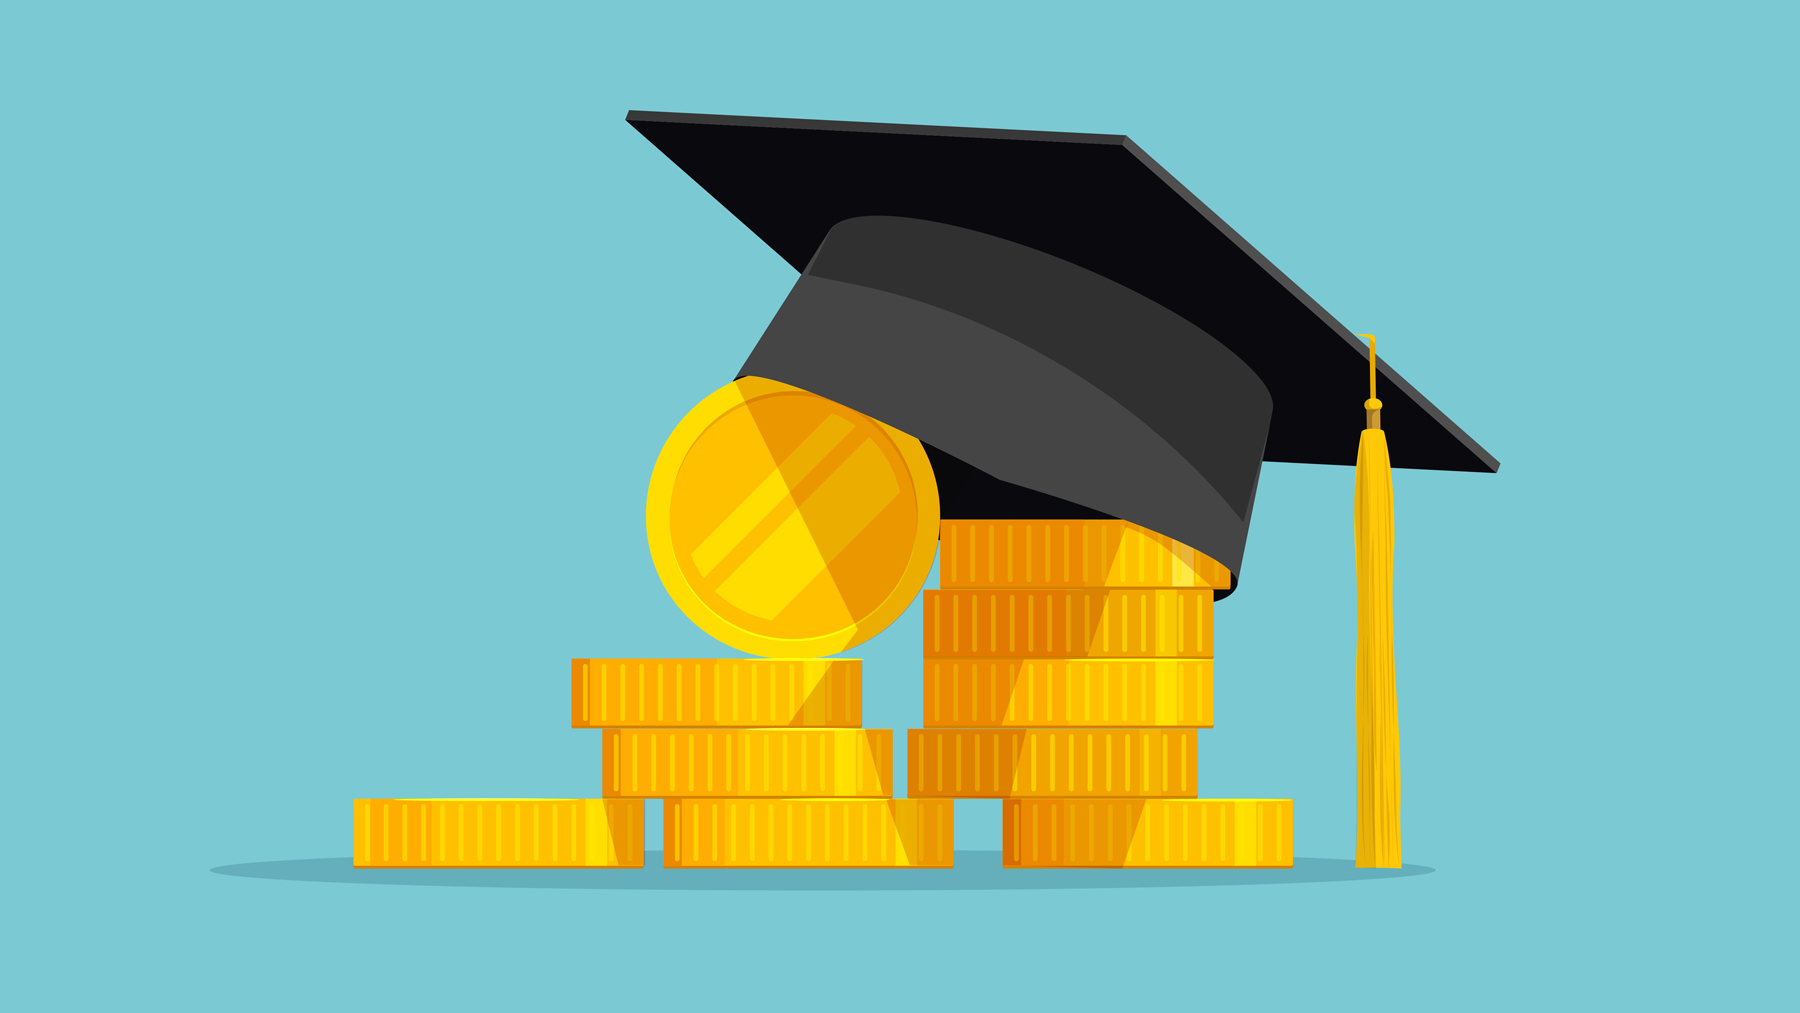 illustration of graduation cap and money: Everything You Need to Know About 529 College Savings Plans